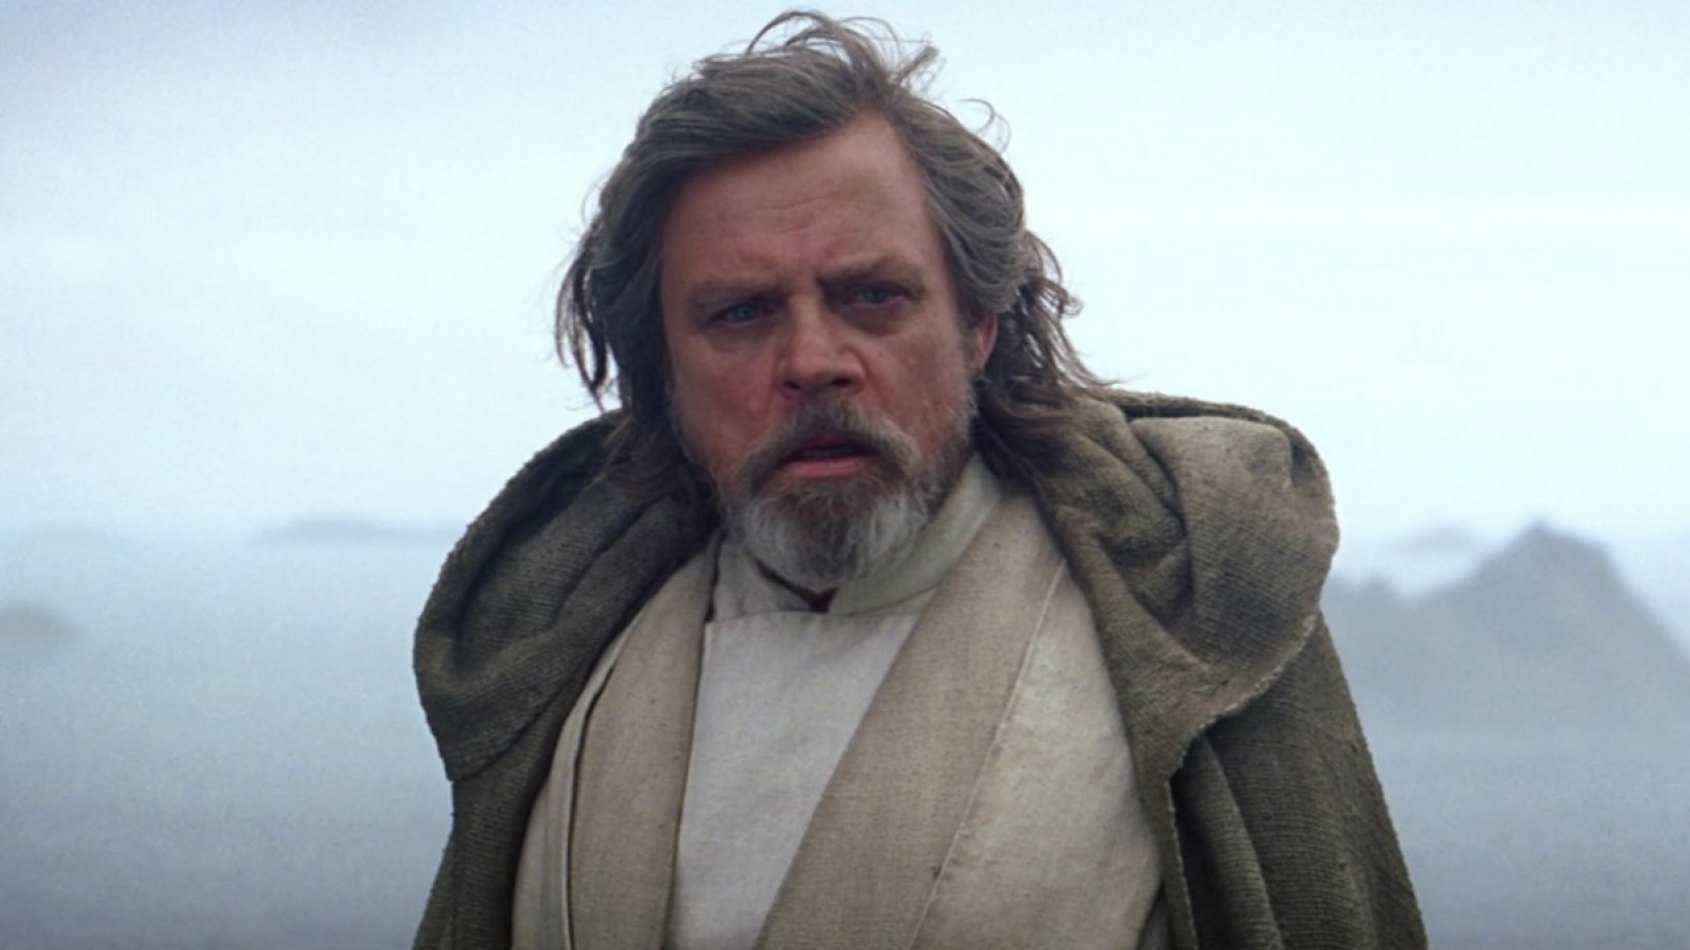 Une illustration de costume pour Luke Skywalker dans l'Episode VIII ?